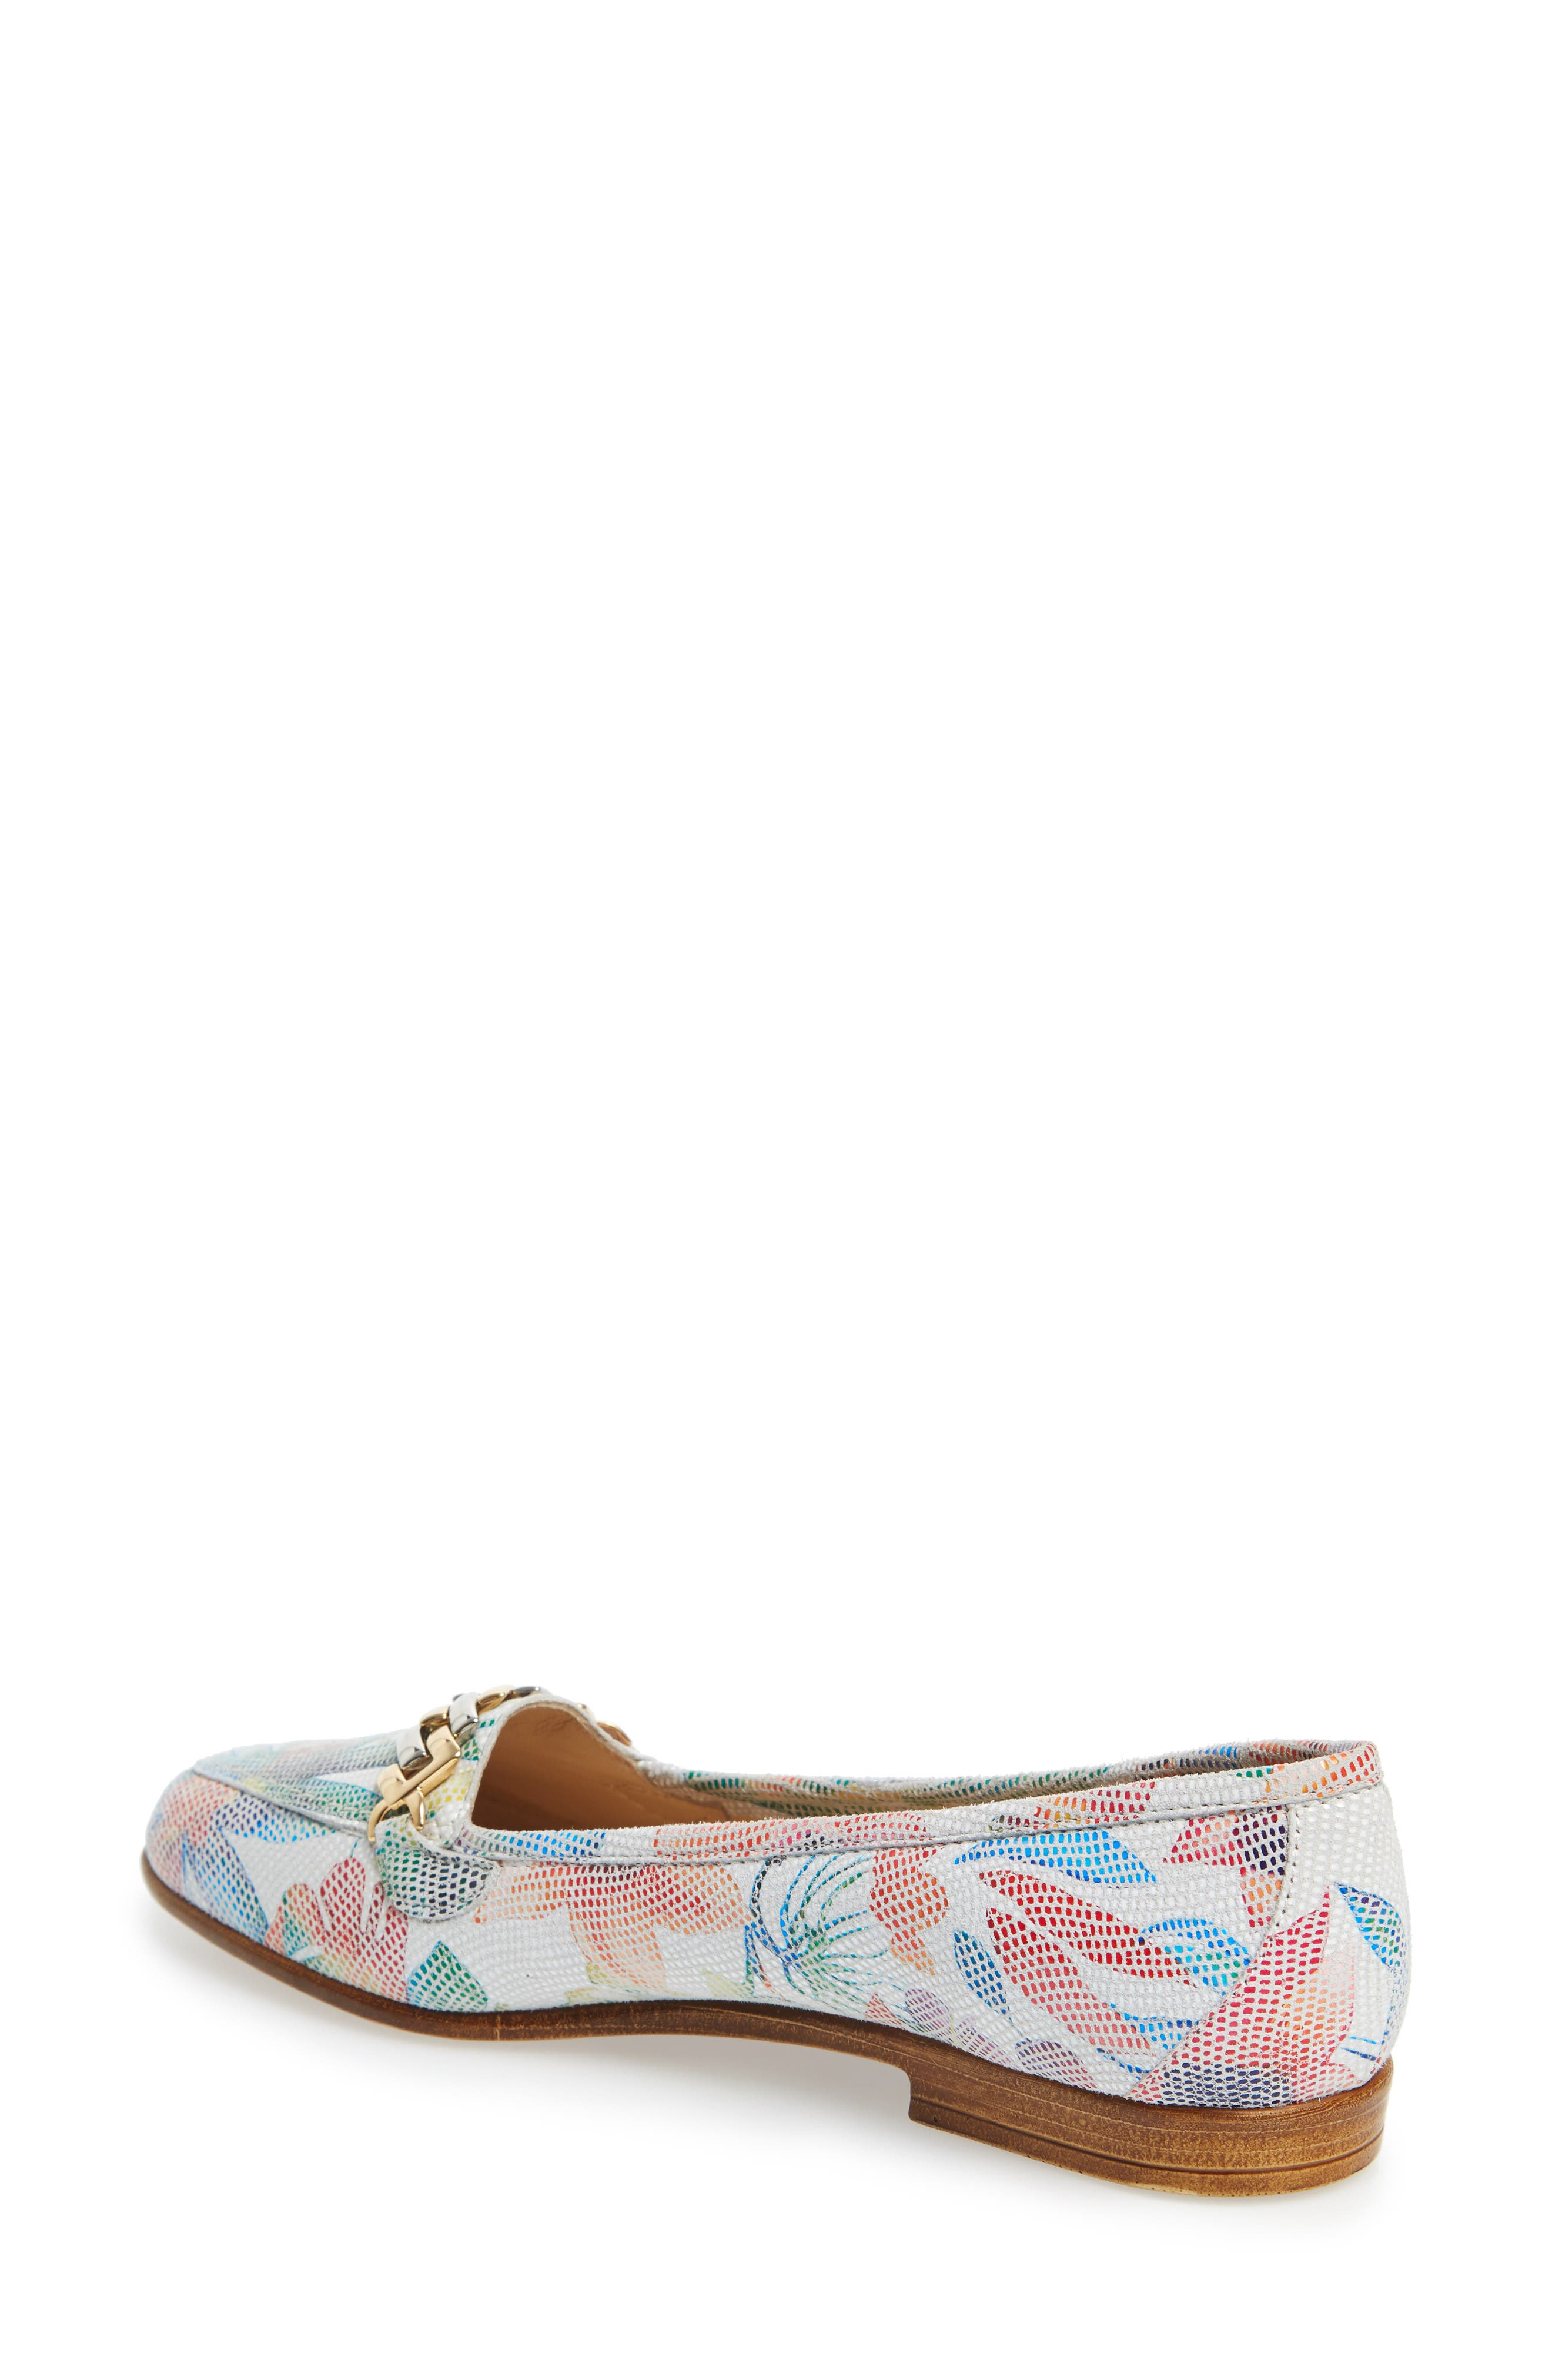 AMALFI BY RANGONI,                             Oste Loafer,                             Alternate thumbnail 2, color,                             WHITE LEATHER